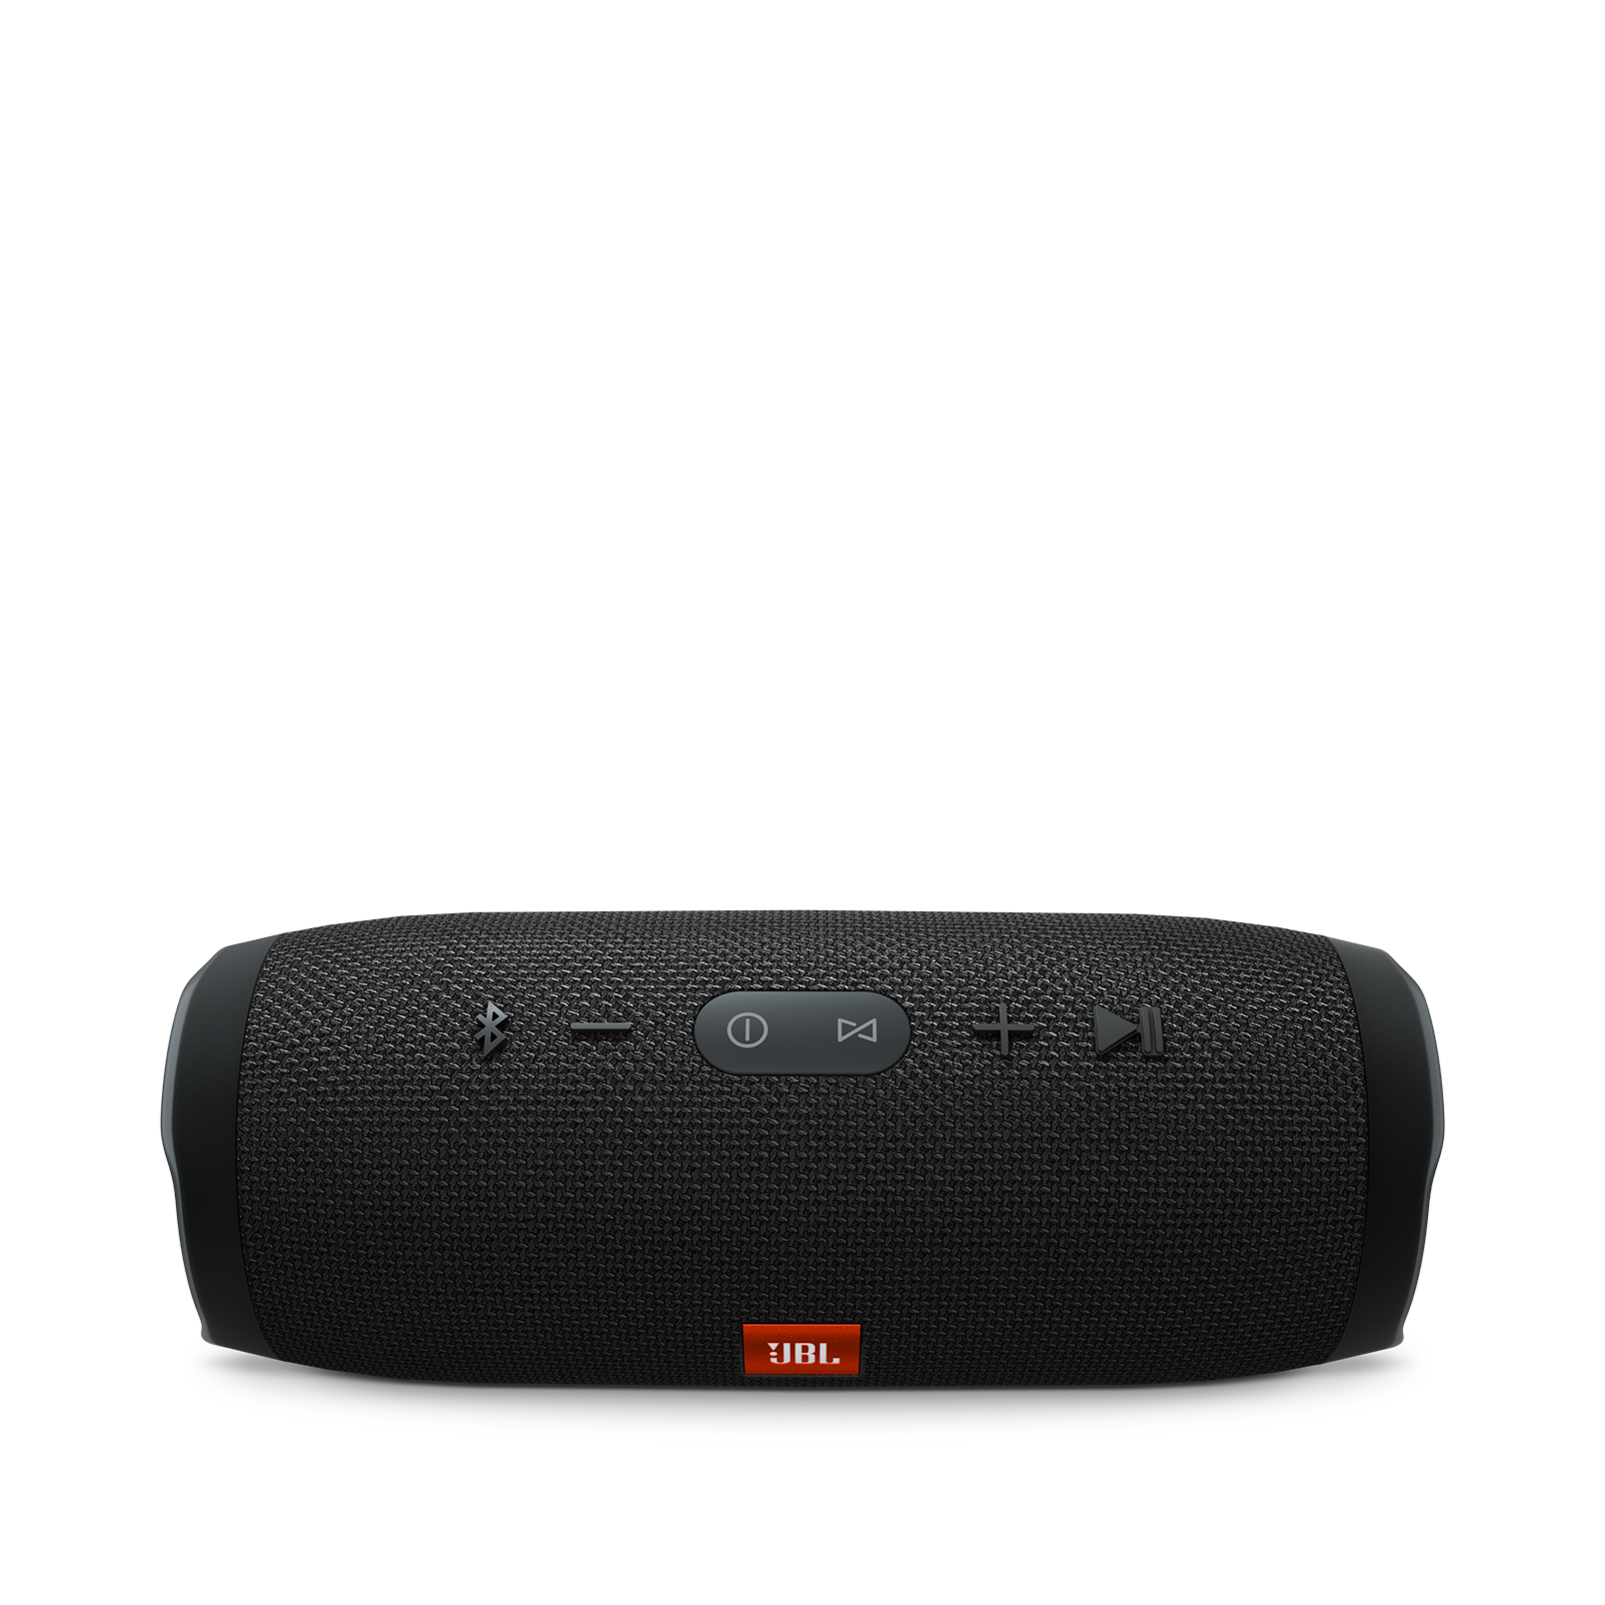 JBL Charge 3 - Black - Full-featured waterproof portable speaker with high-capacity battery to charge your devices - Detailshot 2